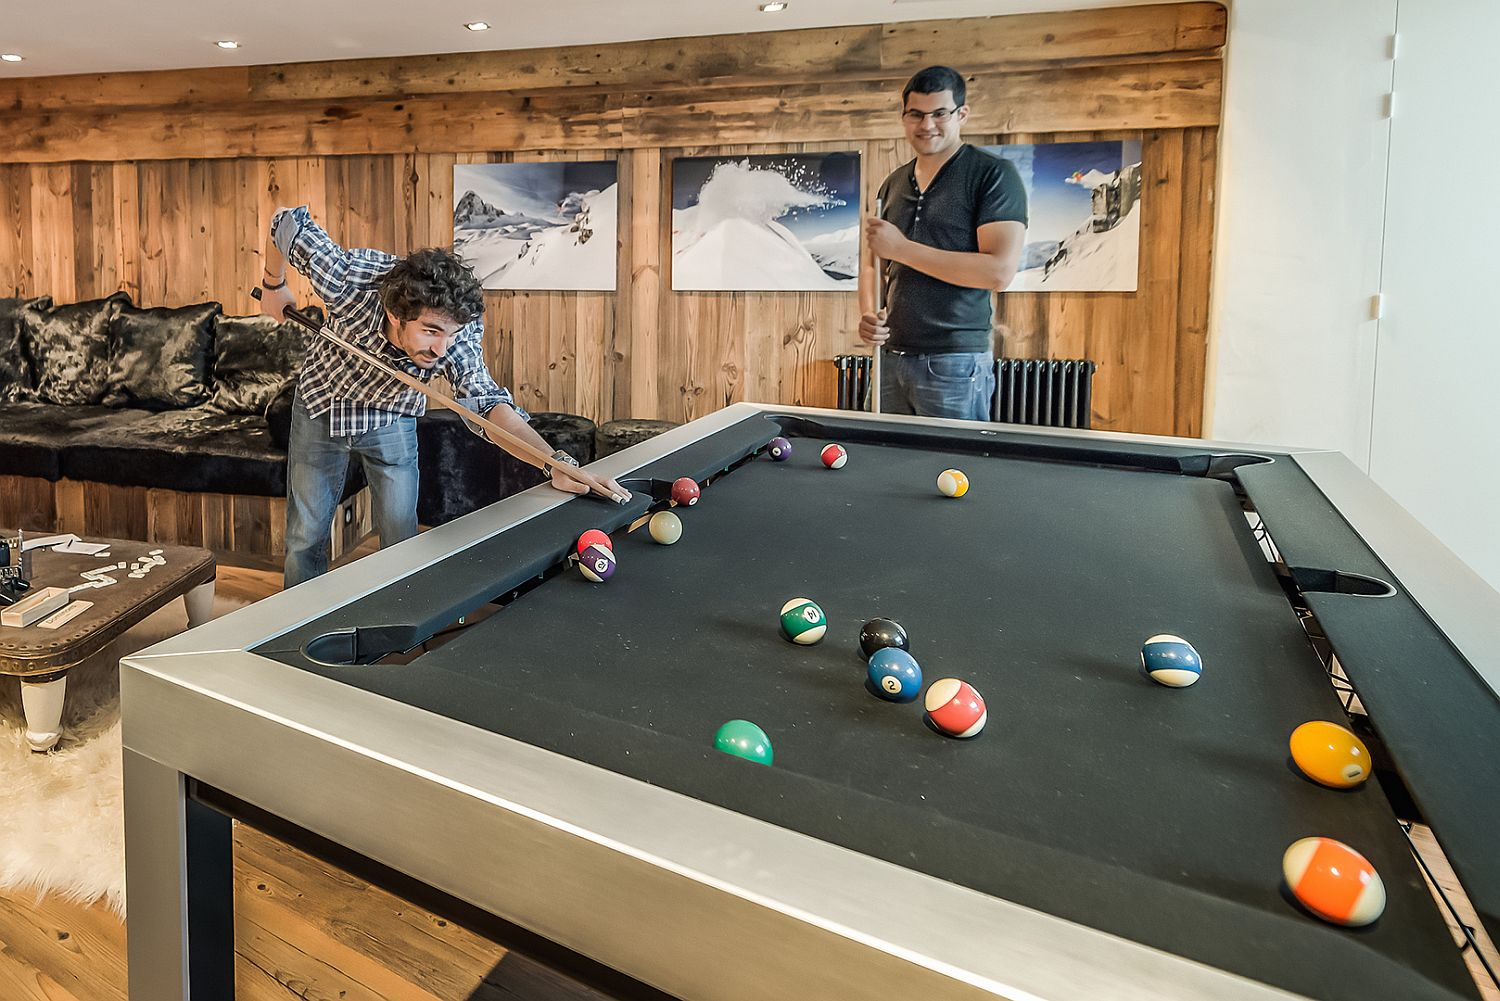 Game room with pool table and darts board